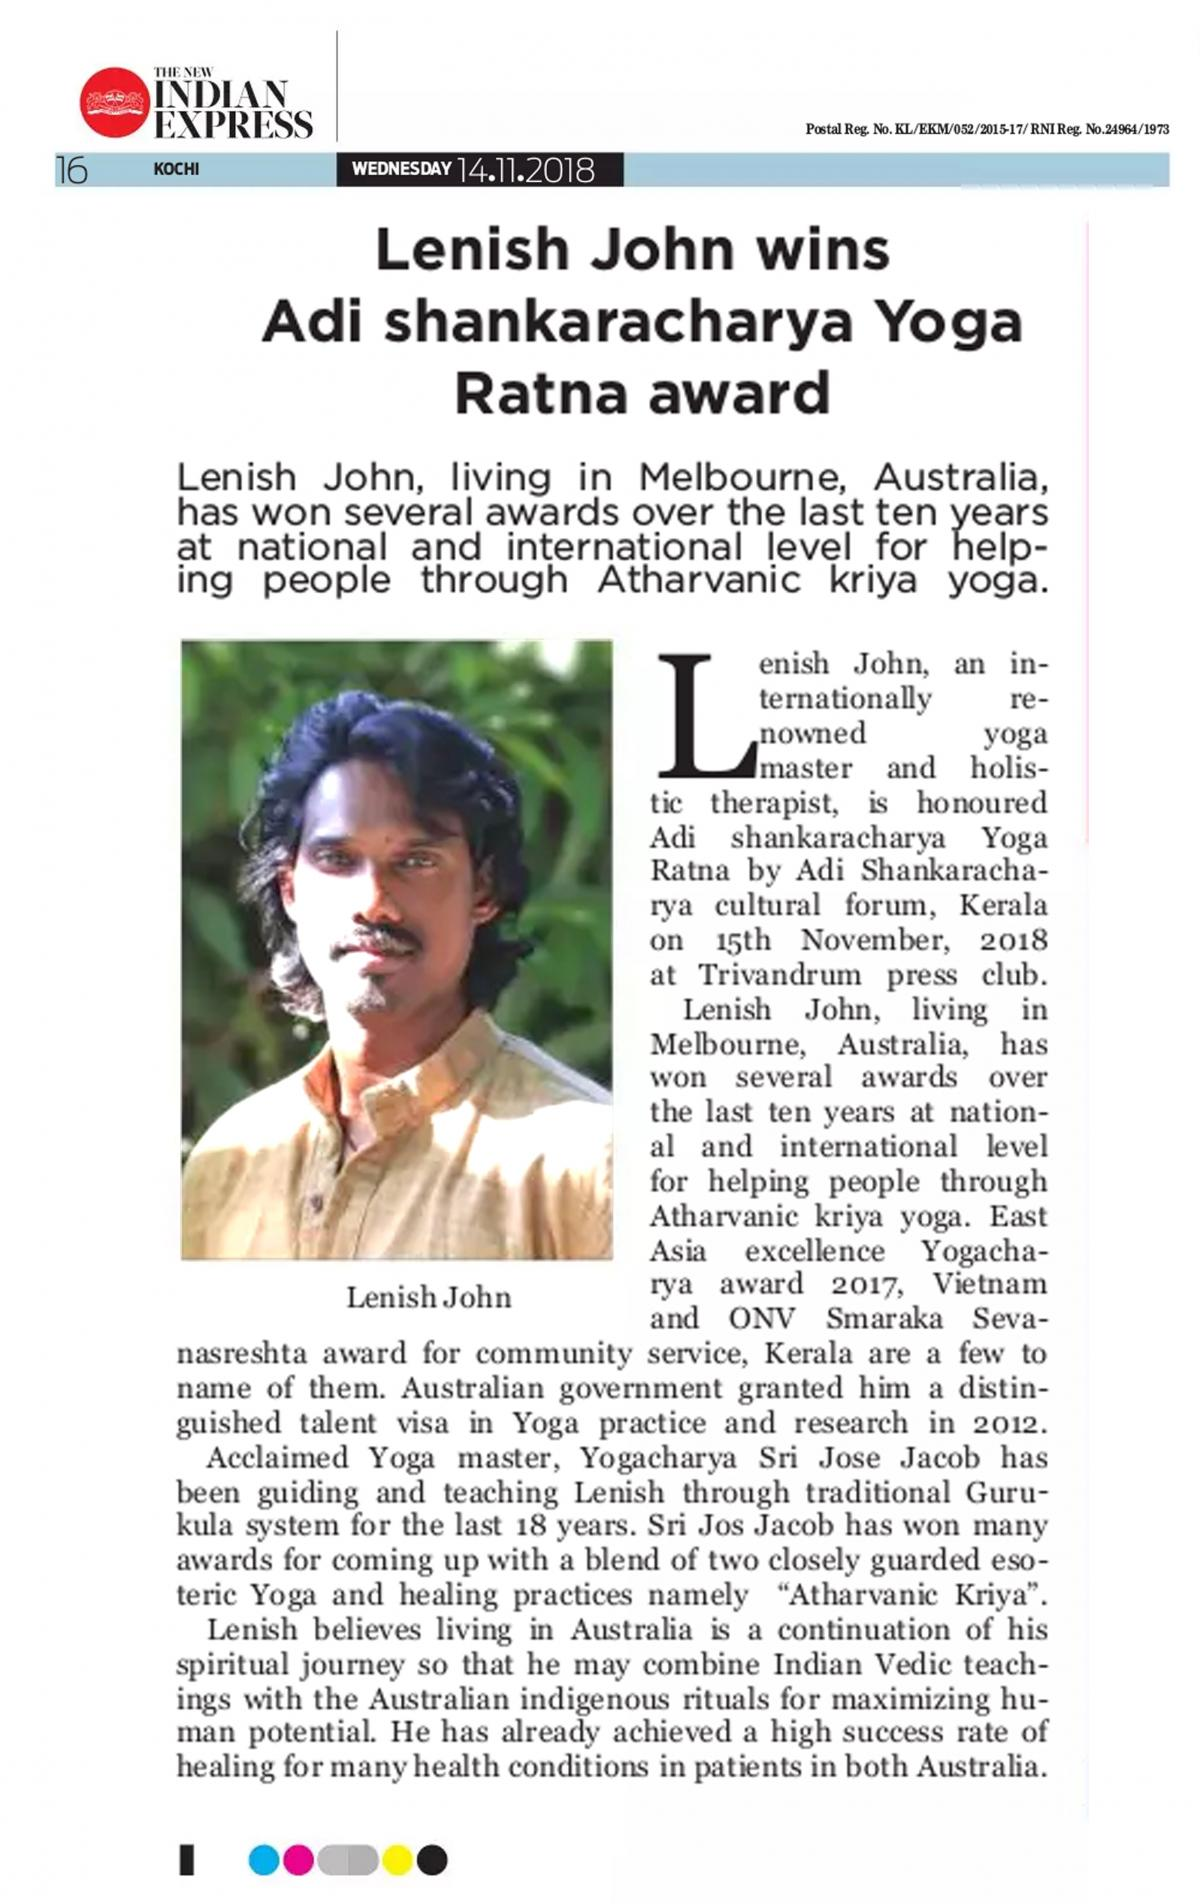 Lenish John wins Adi Shankaracharya Yoga Ratna Award 2018